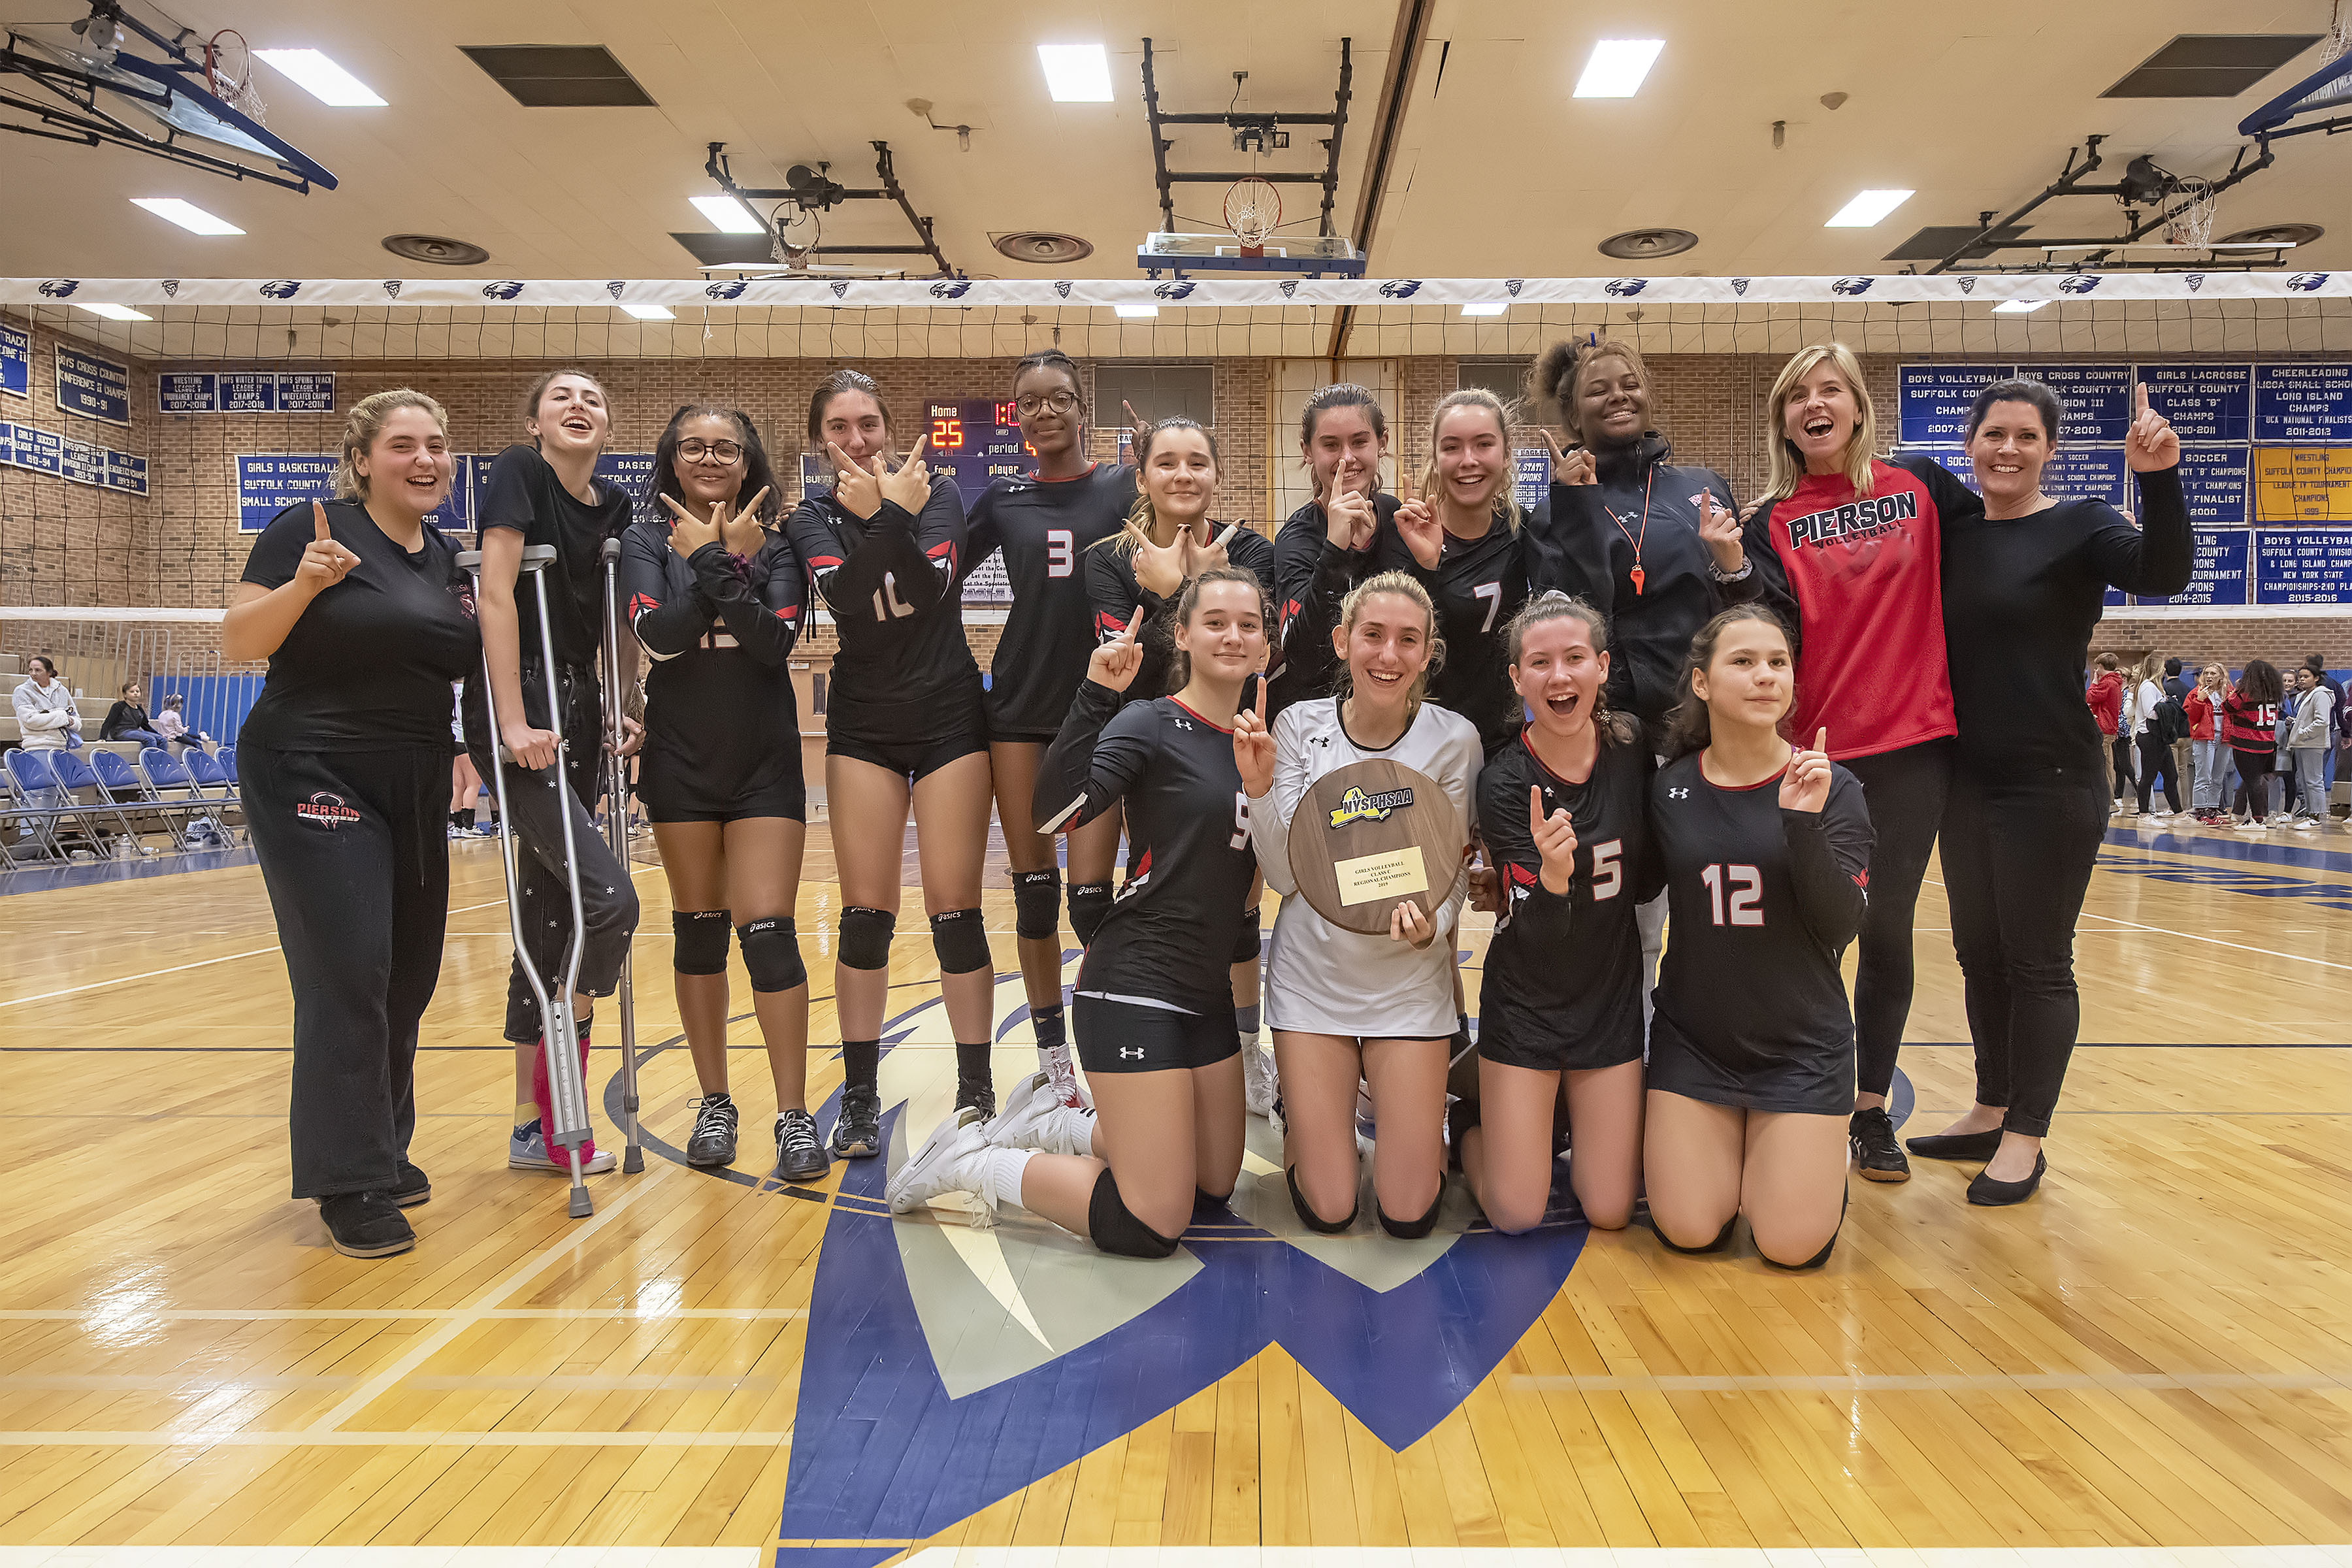 The Pierson Lady Whalers defeated the Oyster Bay Lady Baymen to win the Long Island Class C Volleyball Championship at Hauppauge High School on Saturday night.